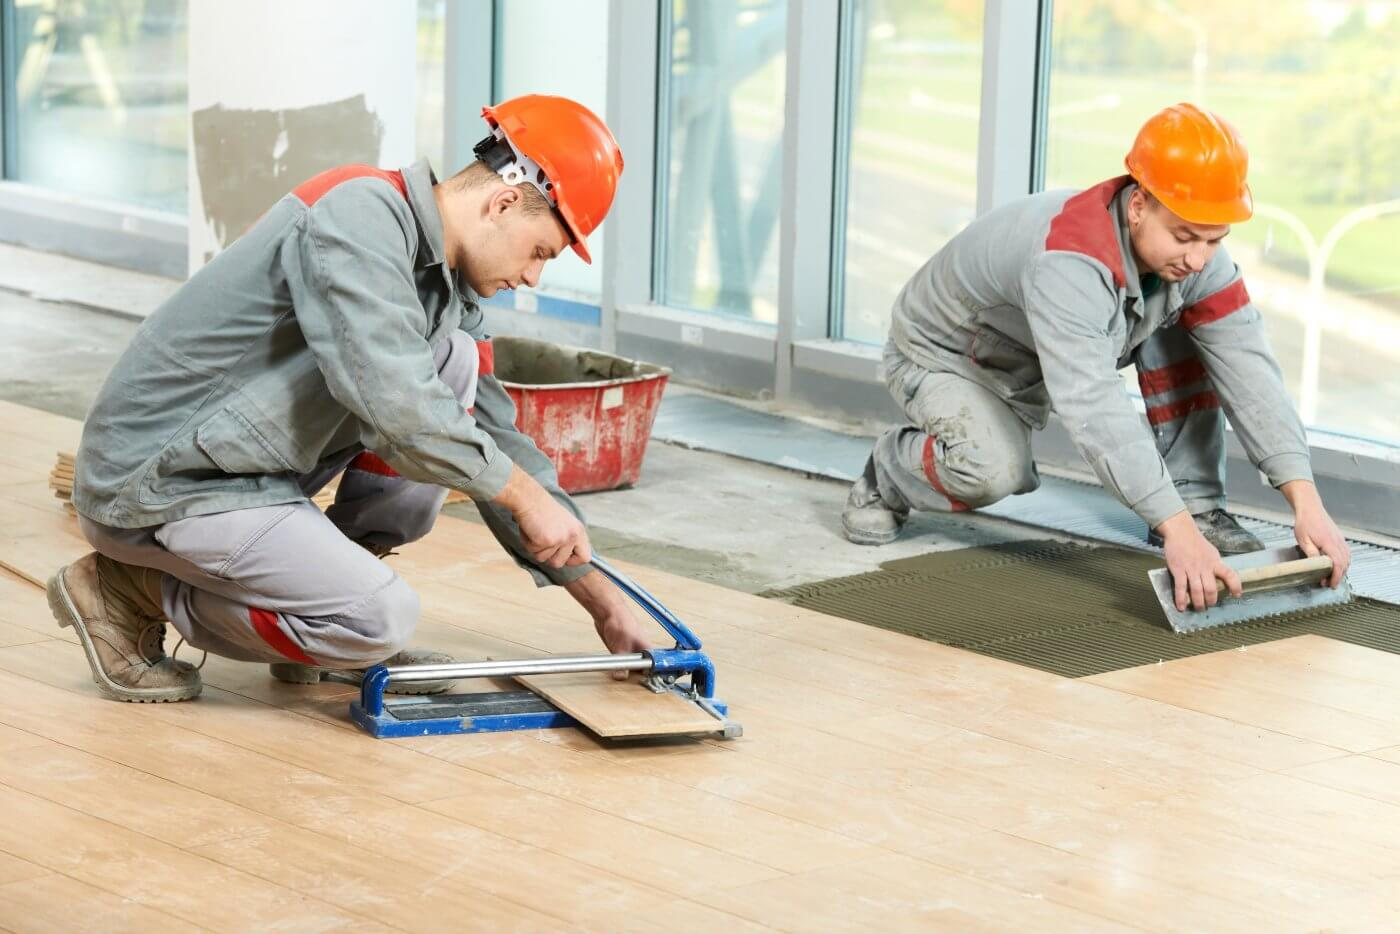 Preferential Residential Ing Companies Near Me Local Ing Installation Contractors Near Me Free Cost Quotes Construction Companies Near Medina Ohio Construction Companies Near Me Yelp Commercial houzz-03 Construction Companies Near Me